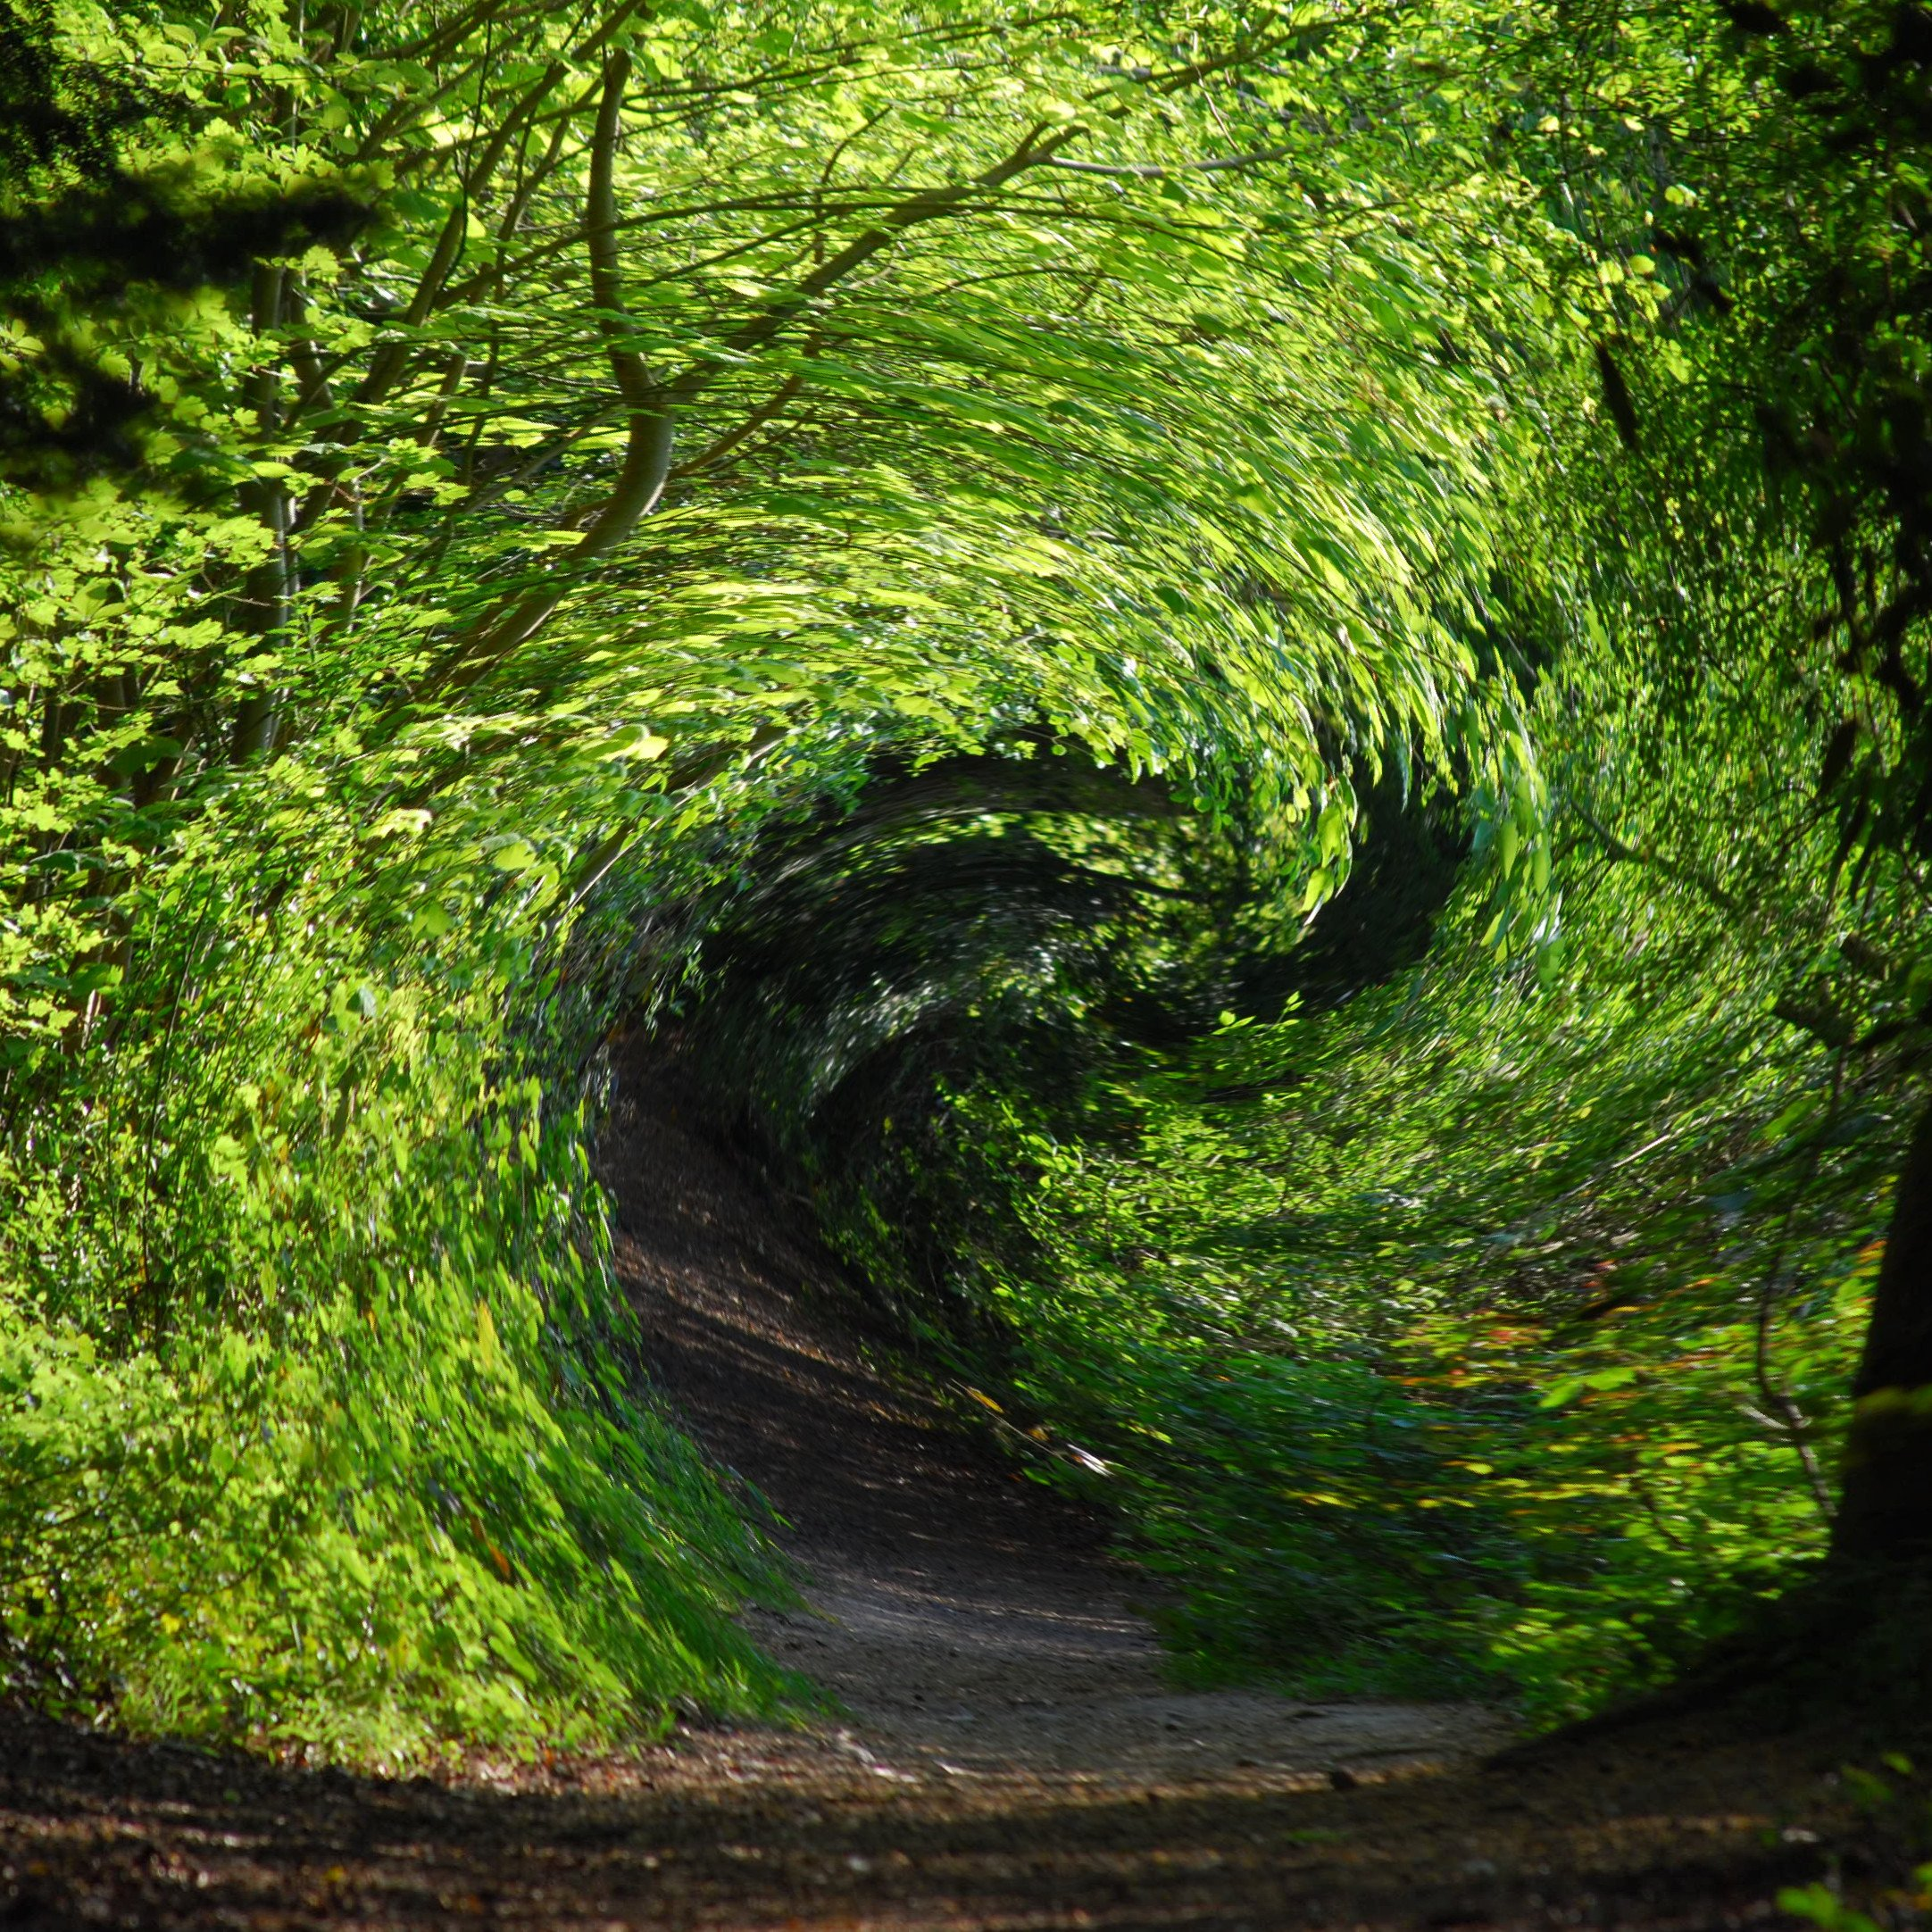 Green magic shown as swirling woods